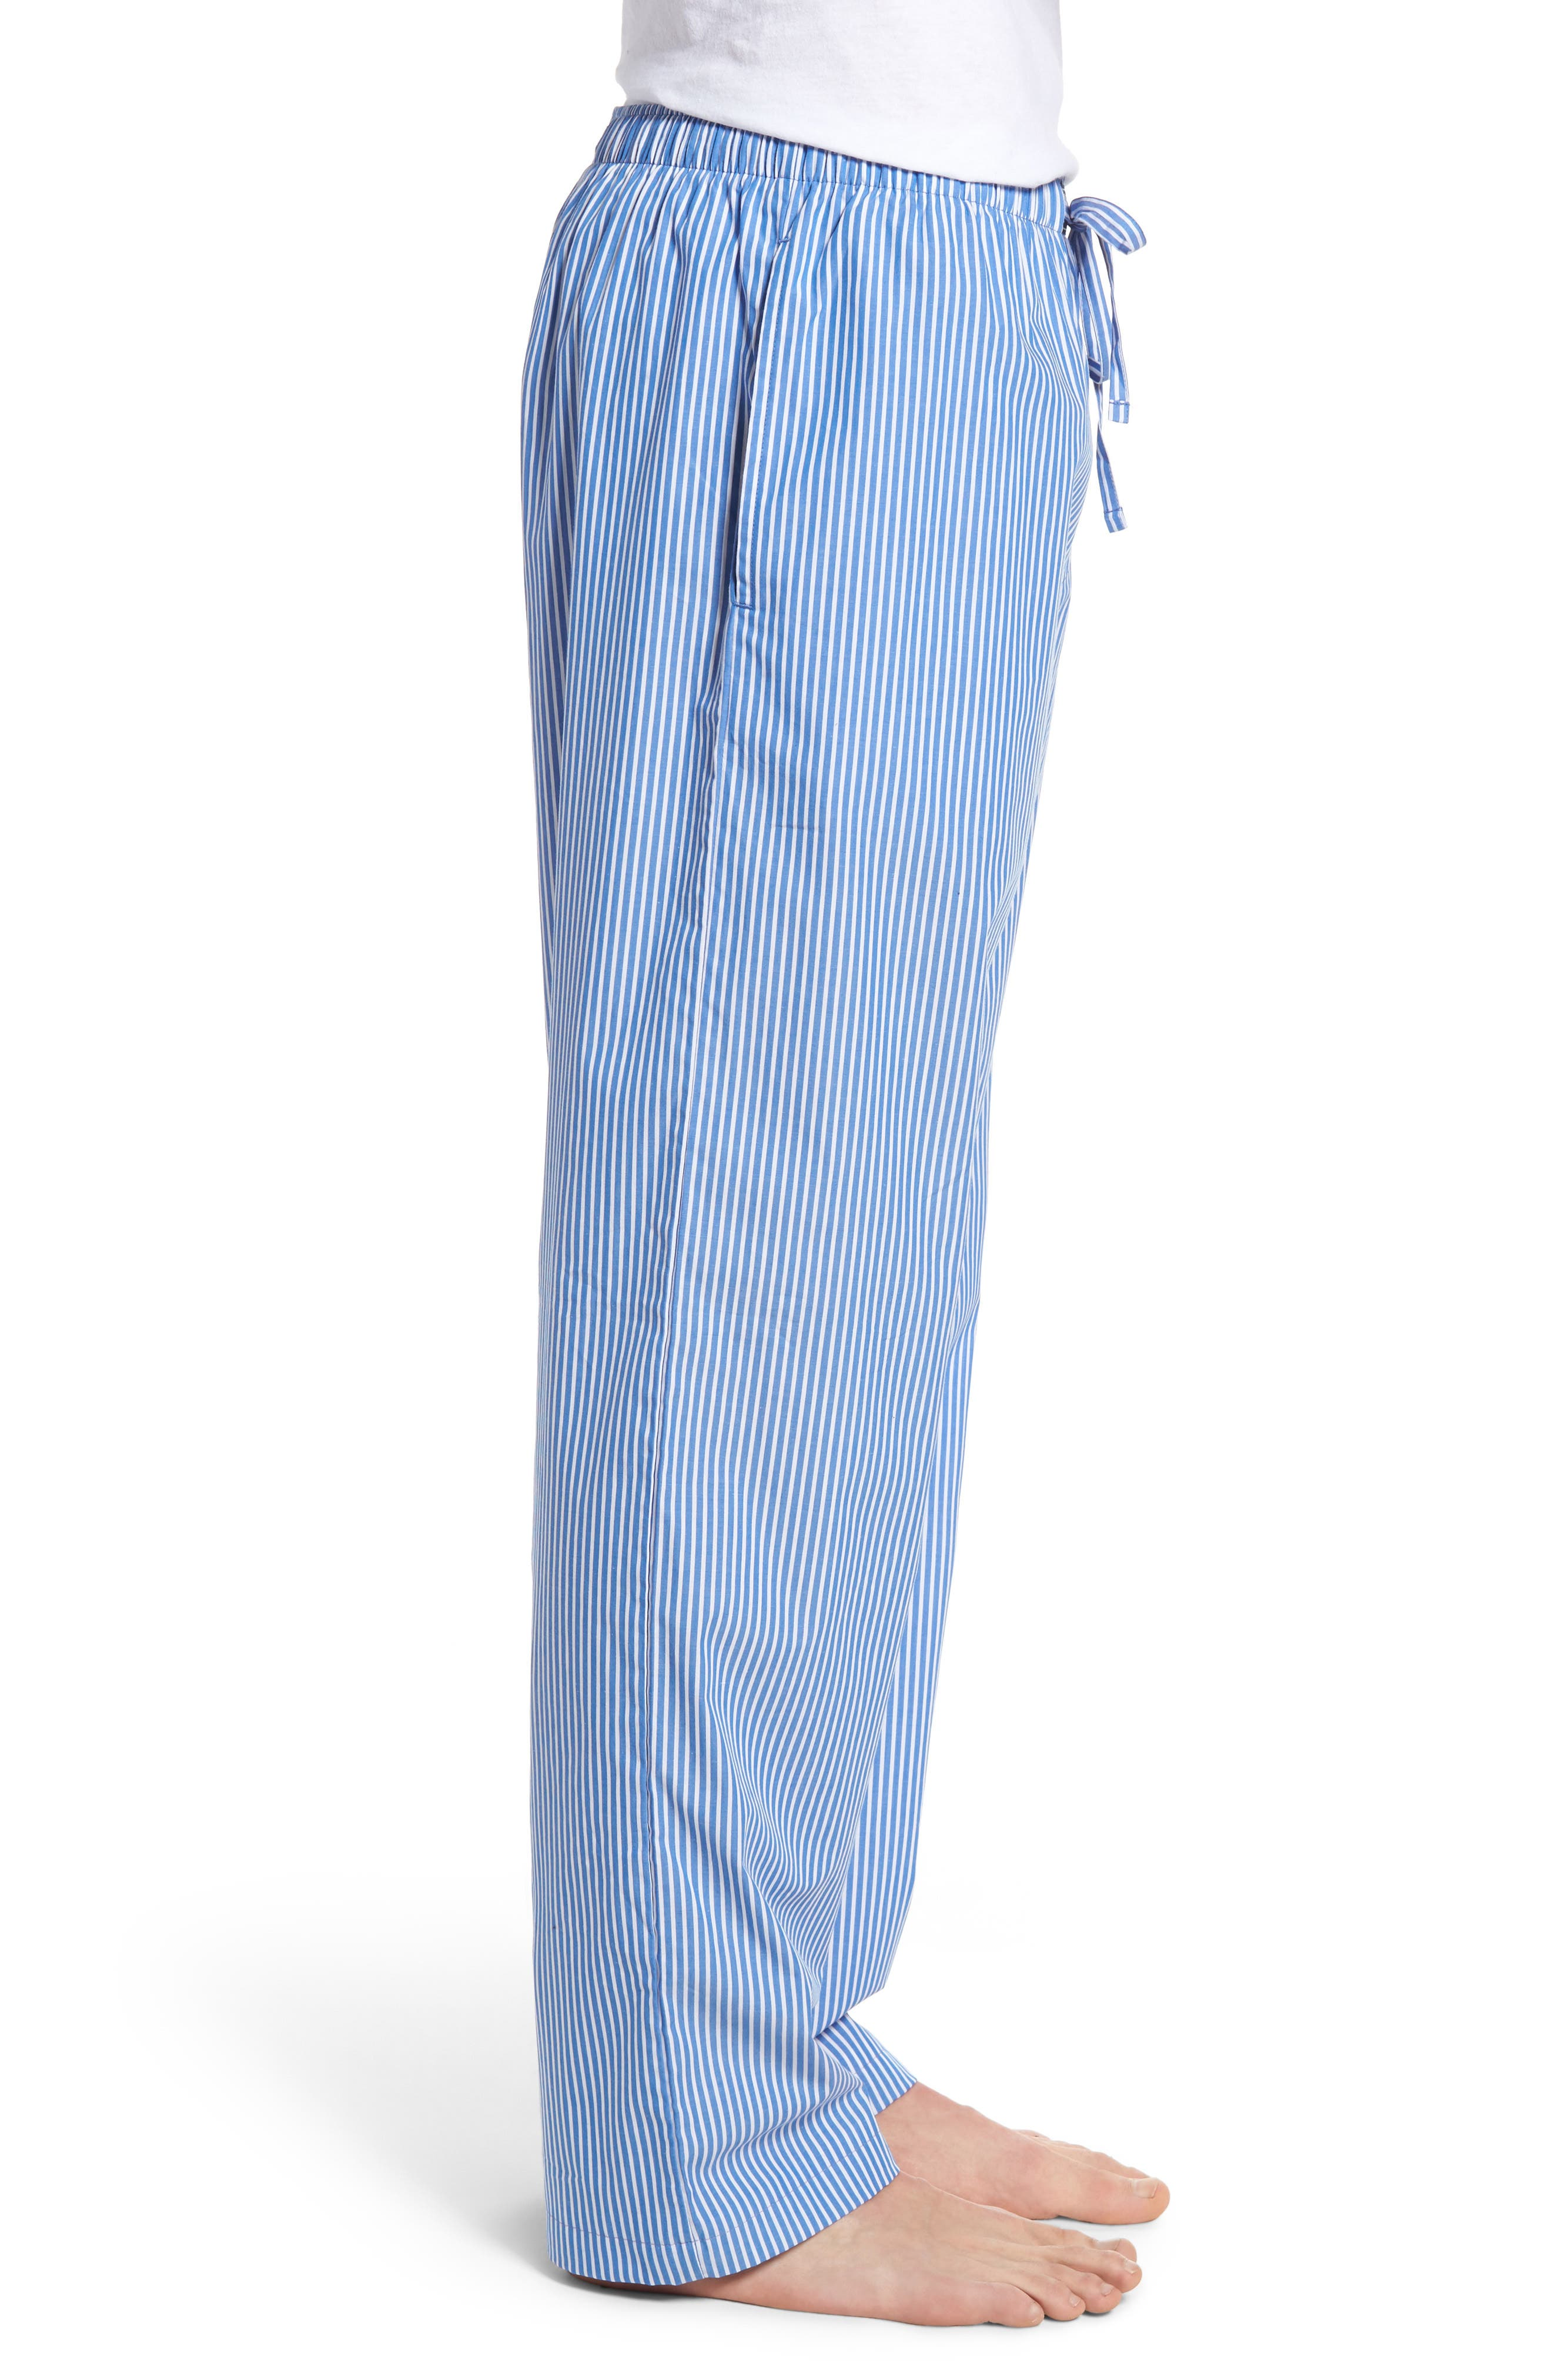 Cotton Lounge Pants,                             Alternate thumbnail 3, color,                             King Blue Stripe